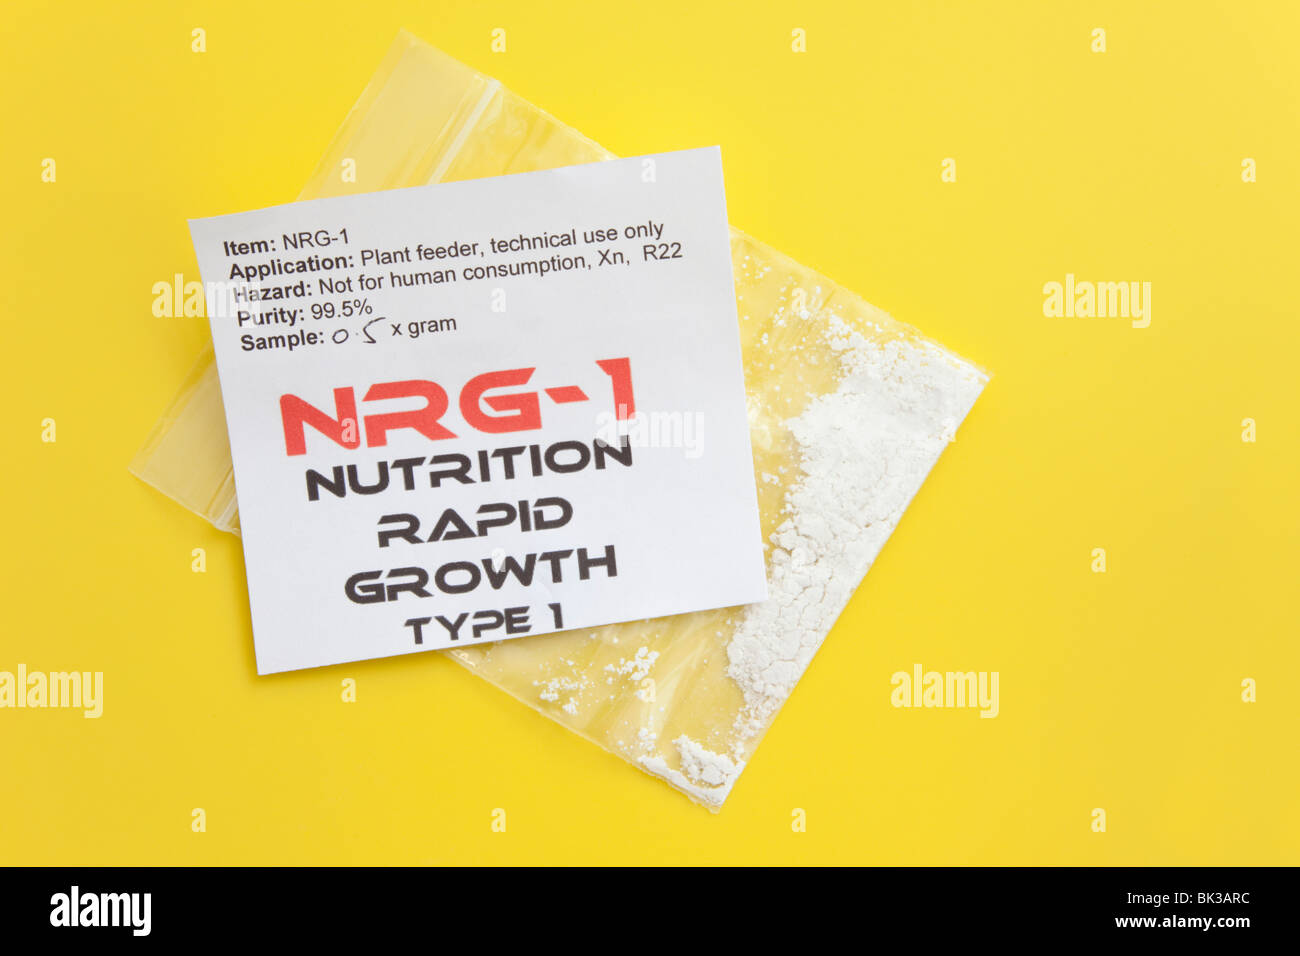 Britain, UK, Europe. 0.5g packet of NRG-1 Nutrition Rapid Growth type 1 plant food, popular as an illegal high in - Stock Image